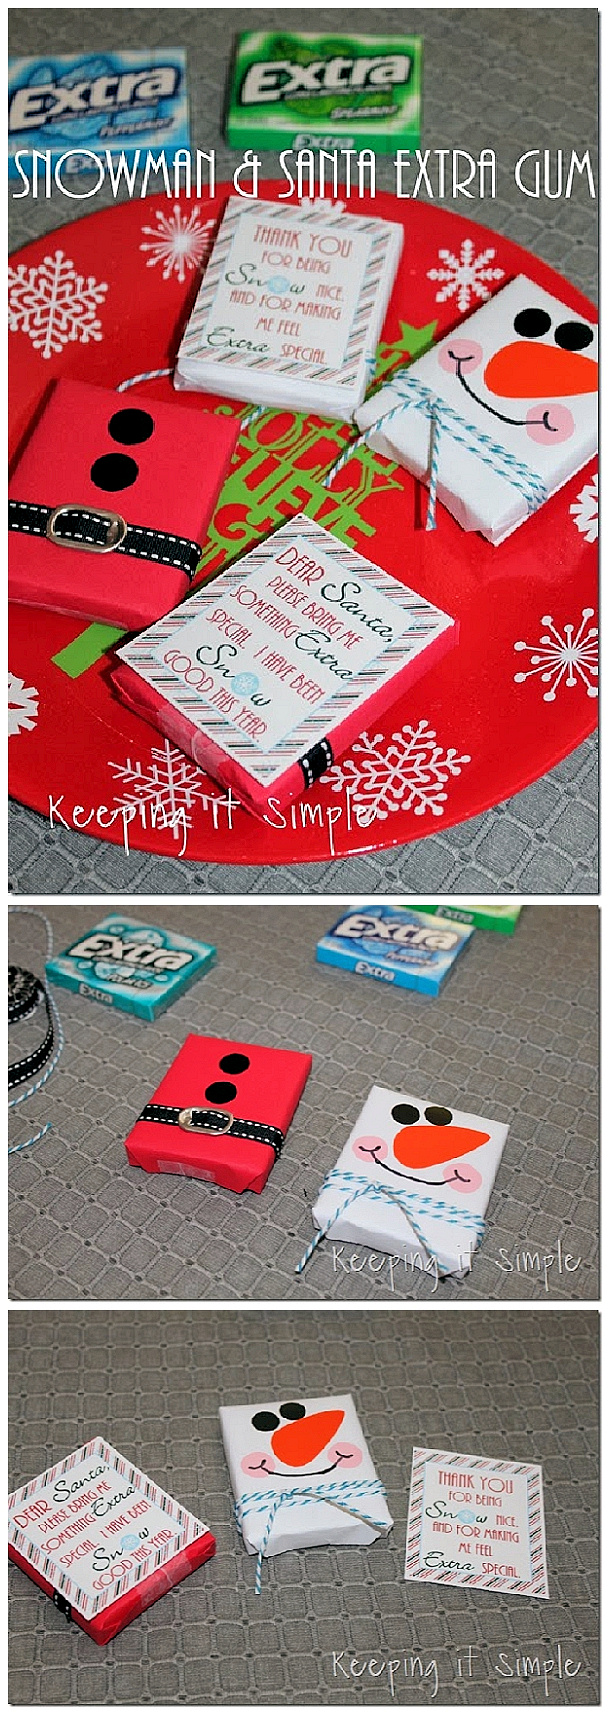 Adorable Santa and Snowman FREE Printables for Extra Gum - easy and sweet Christmas Gift Idea for Teachers, Neighbors and Friends! | Keeping it Simple Crafts #christmasprintables #freechristmasprintables #christmascards #christmasgifttags #printablechristmascards #printablechristmasgifttags #christmaspapercrafts